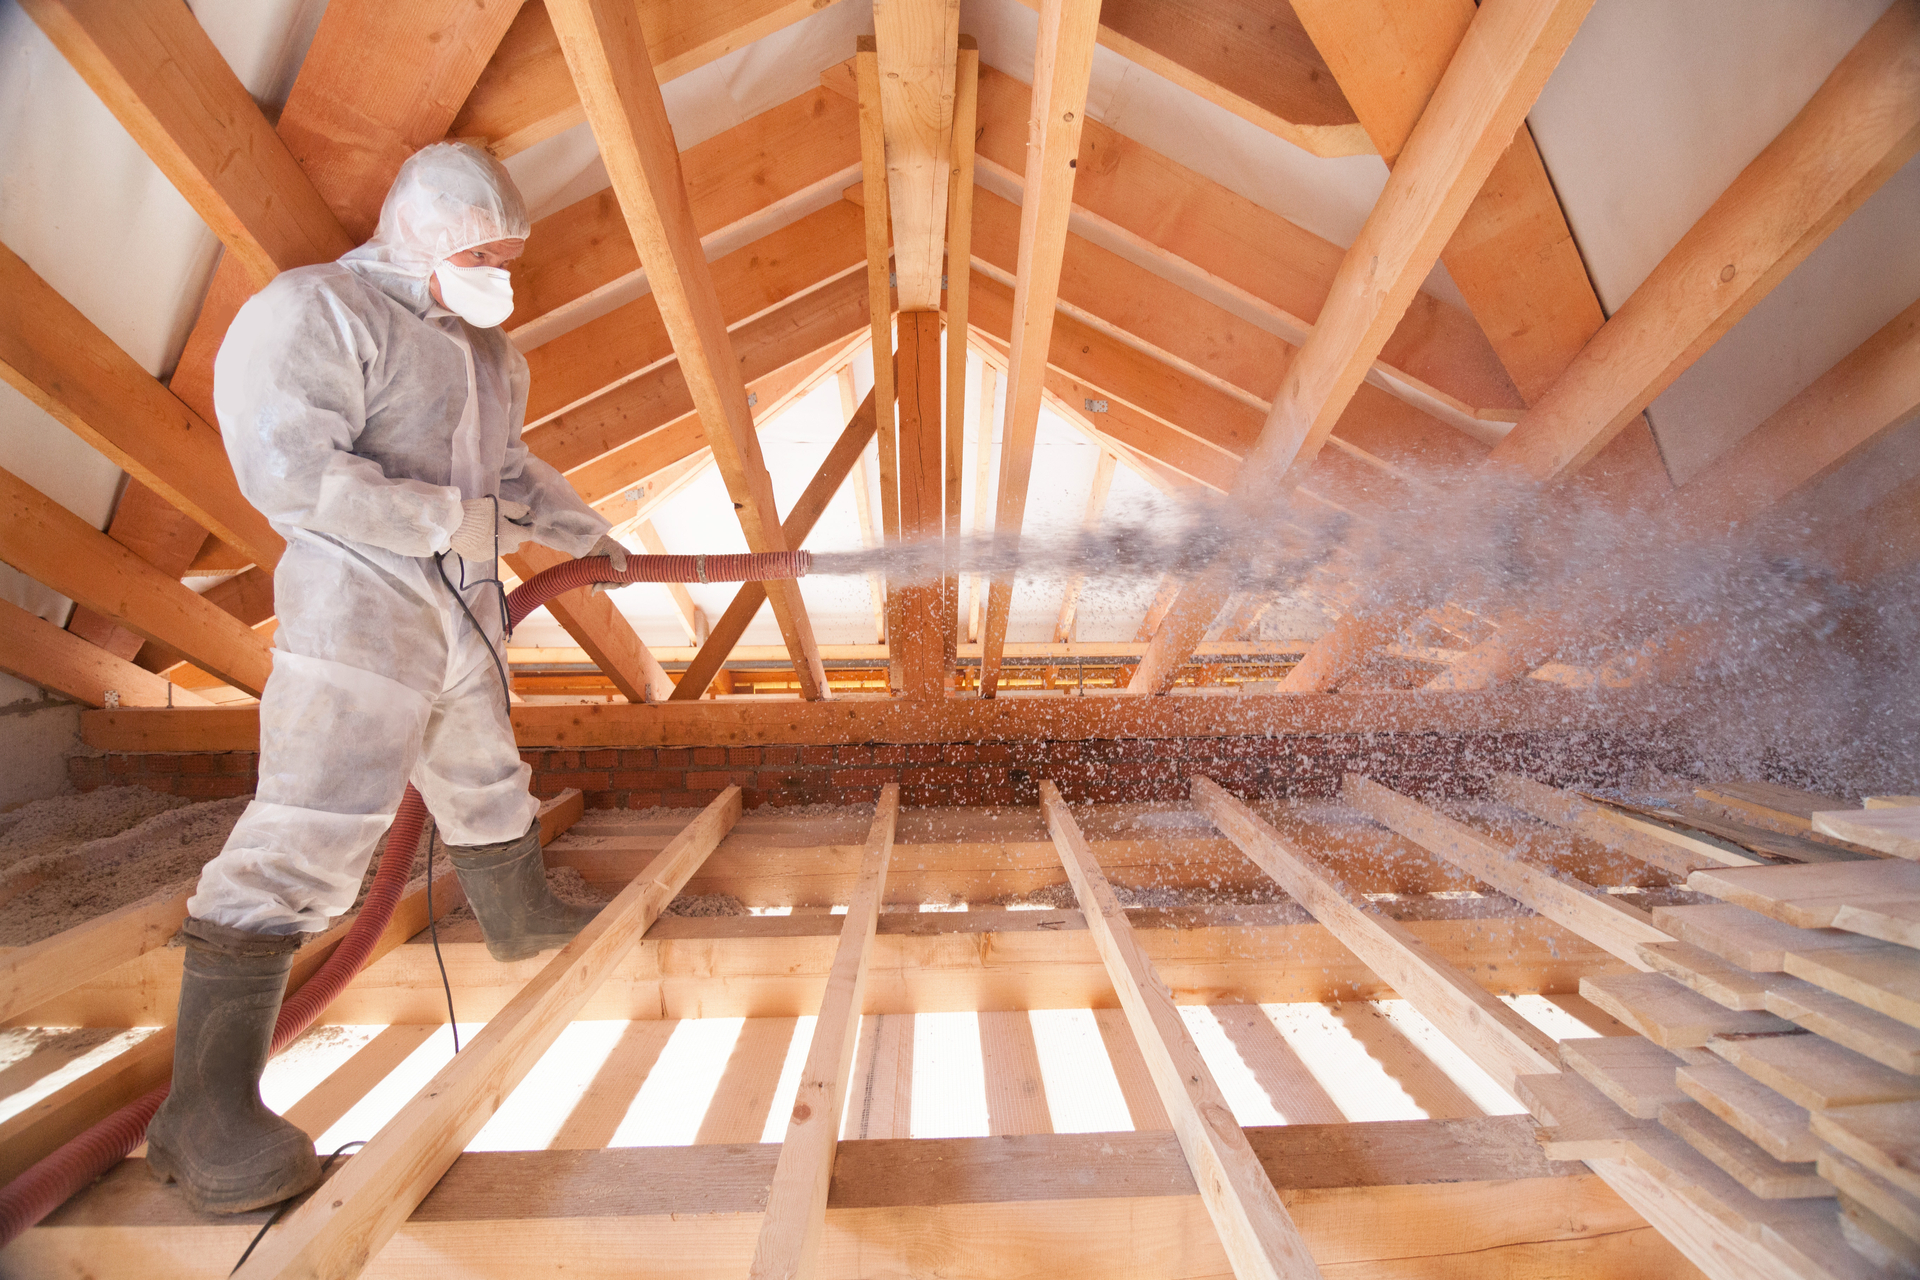 A man spraying insulation in an attic.